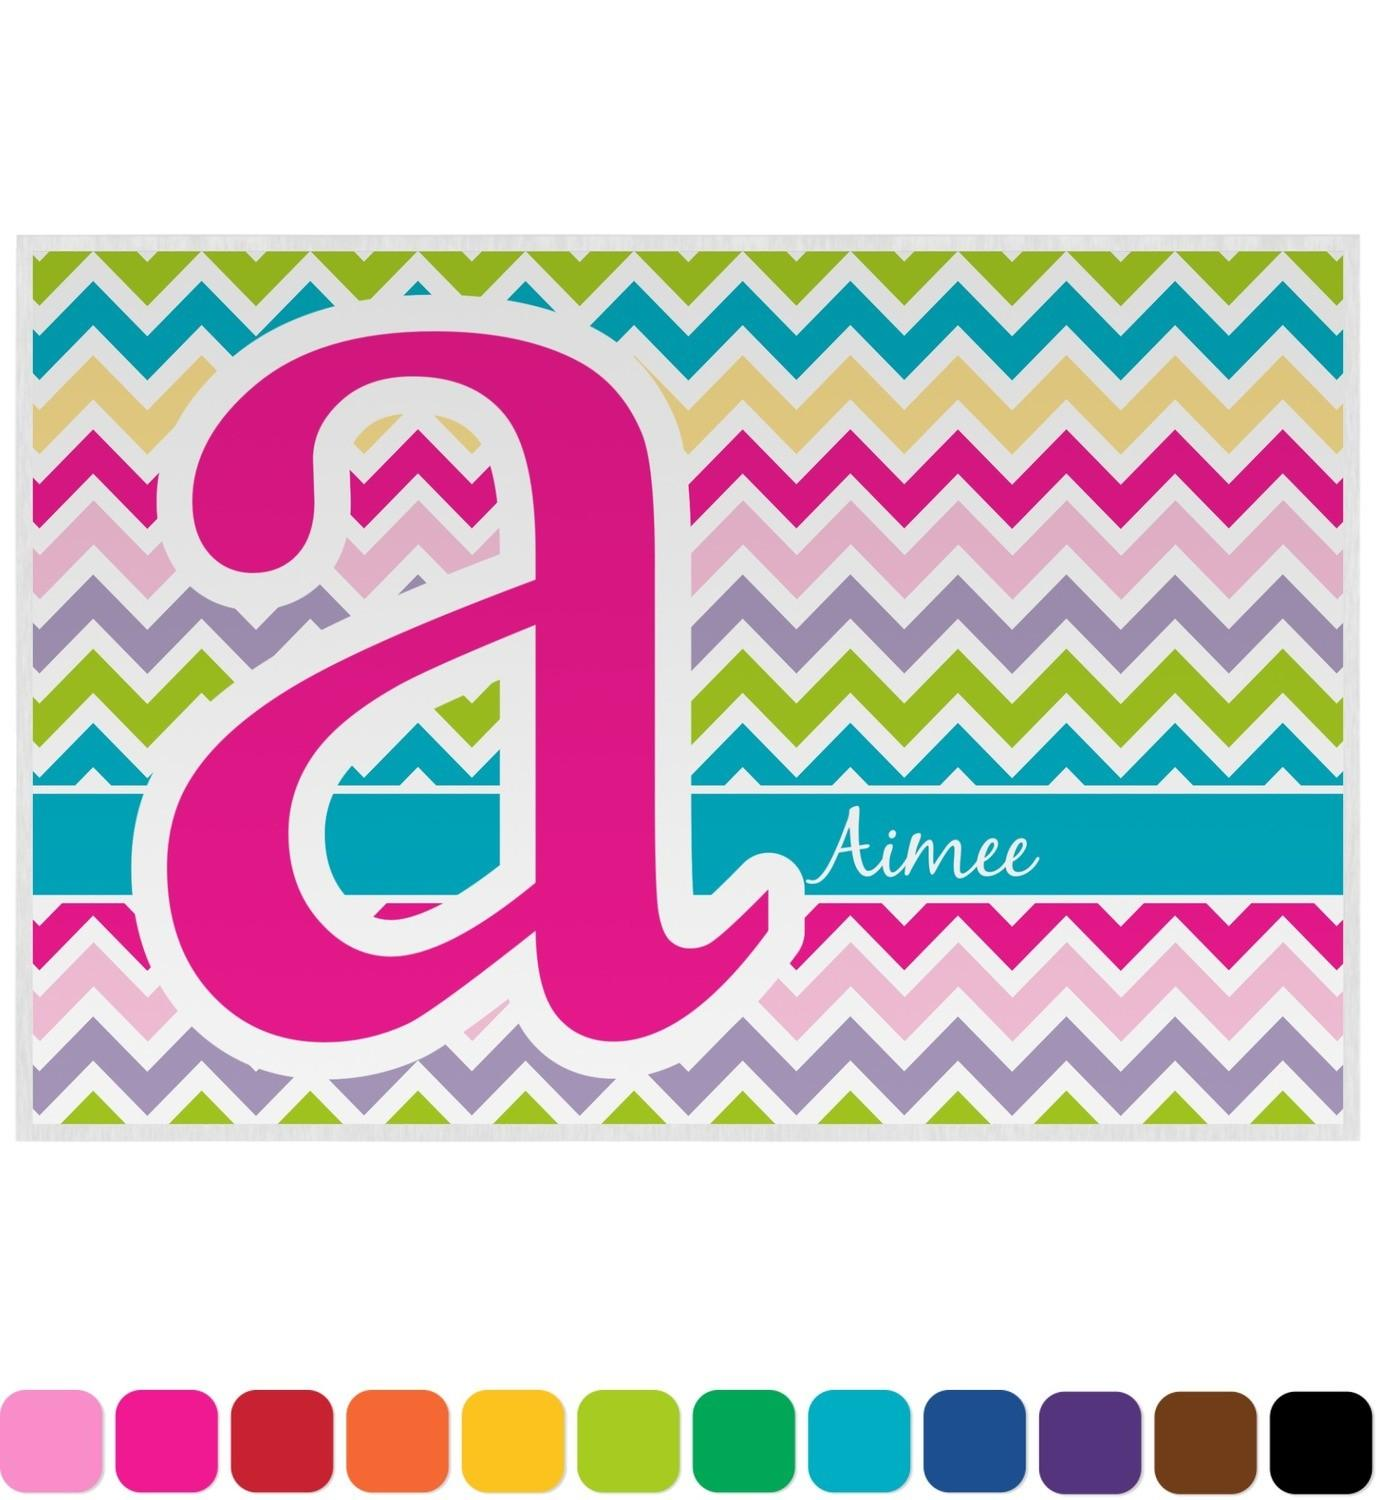 Colorful Chevron Placemat Laminated Personalized